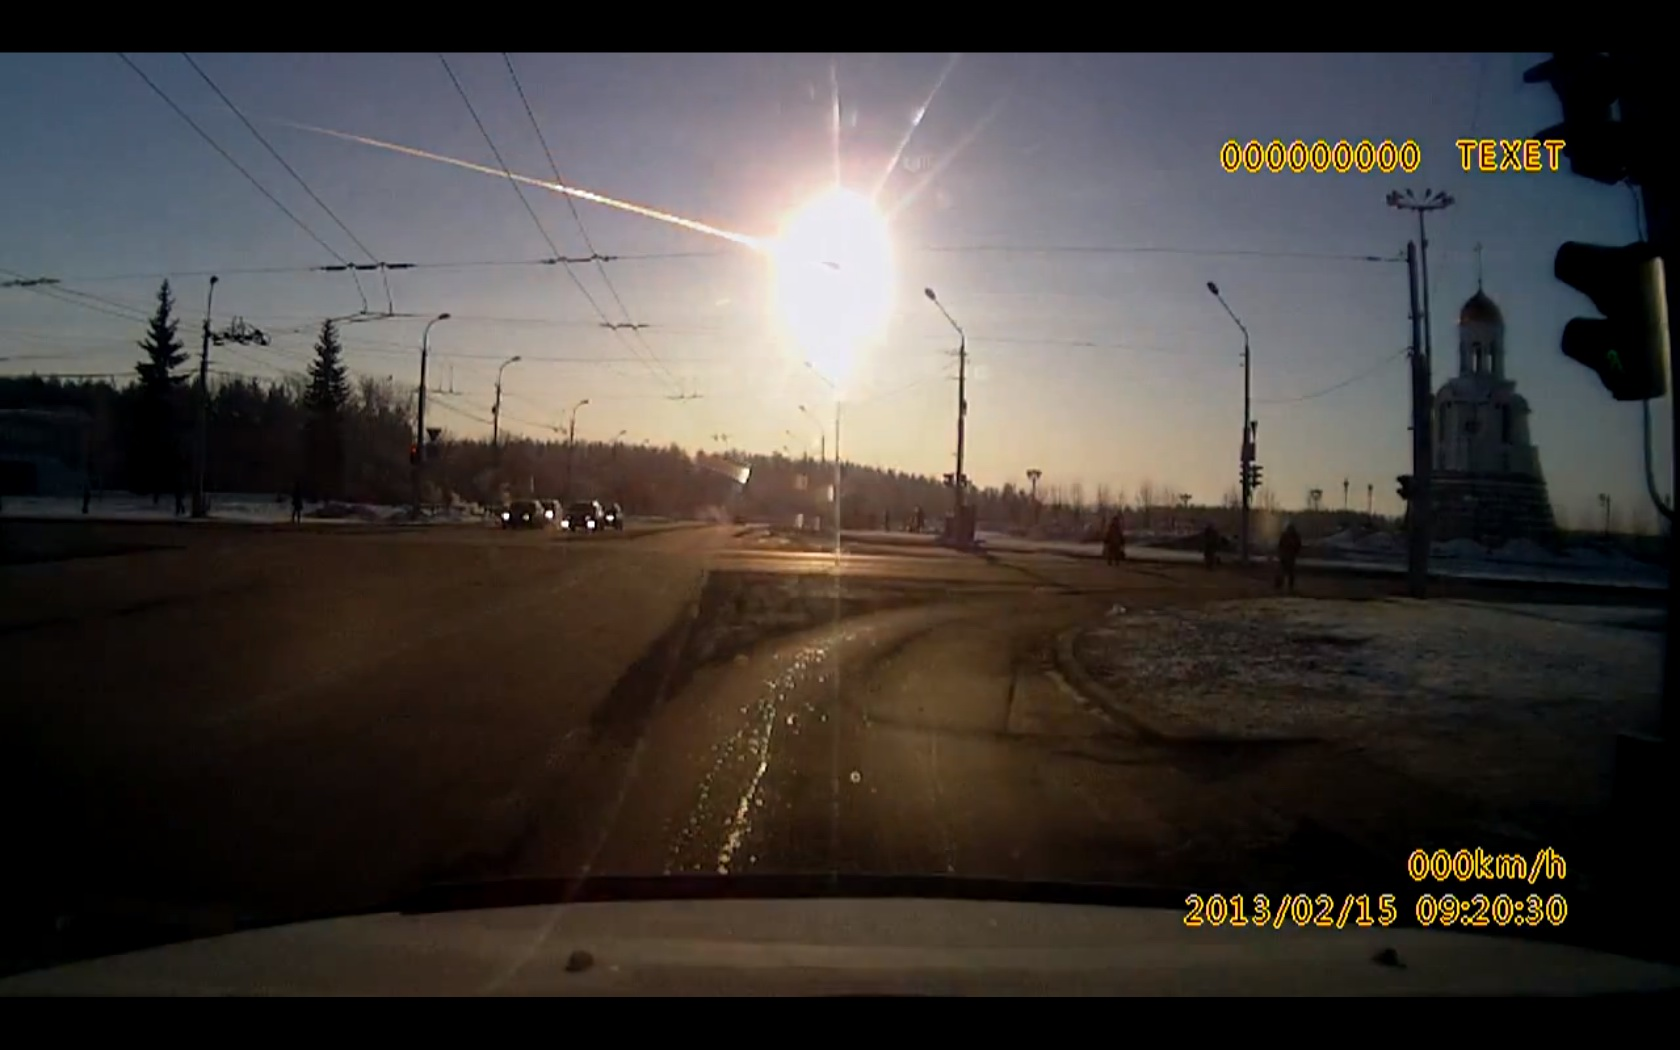 Chelyabinsk Russia  City new picture : ... meteorite explosion in the sky over Chelyabinsk · Russia travel blog